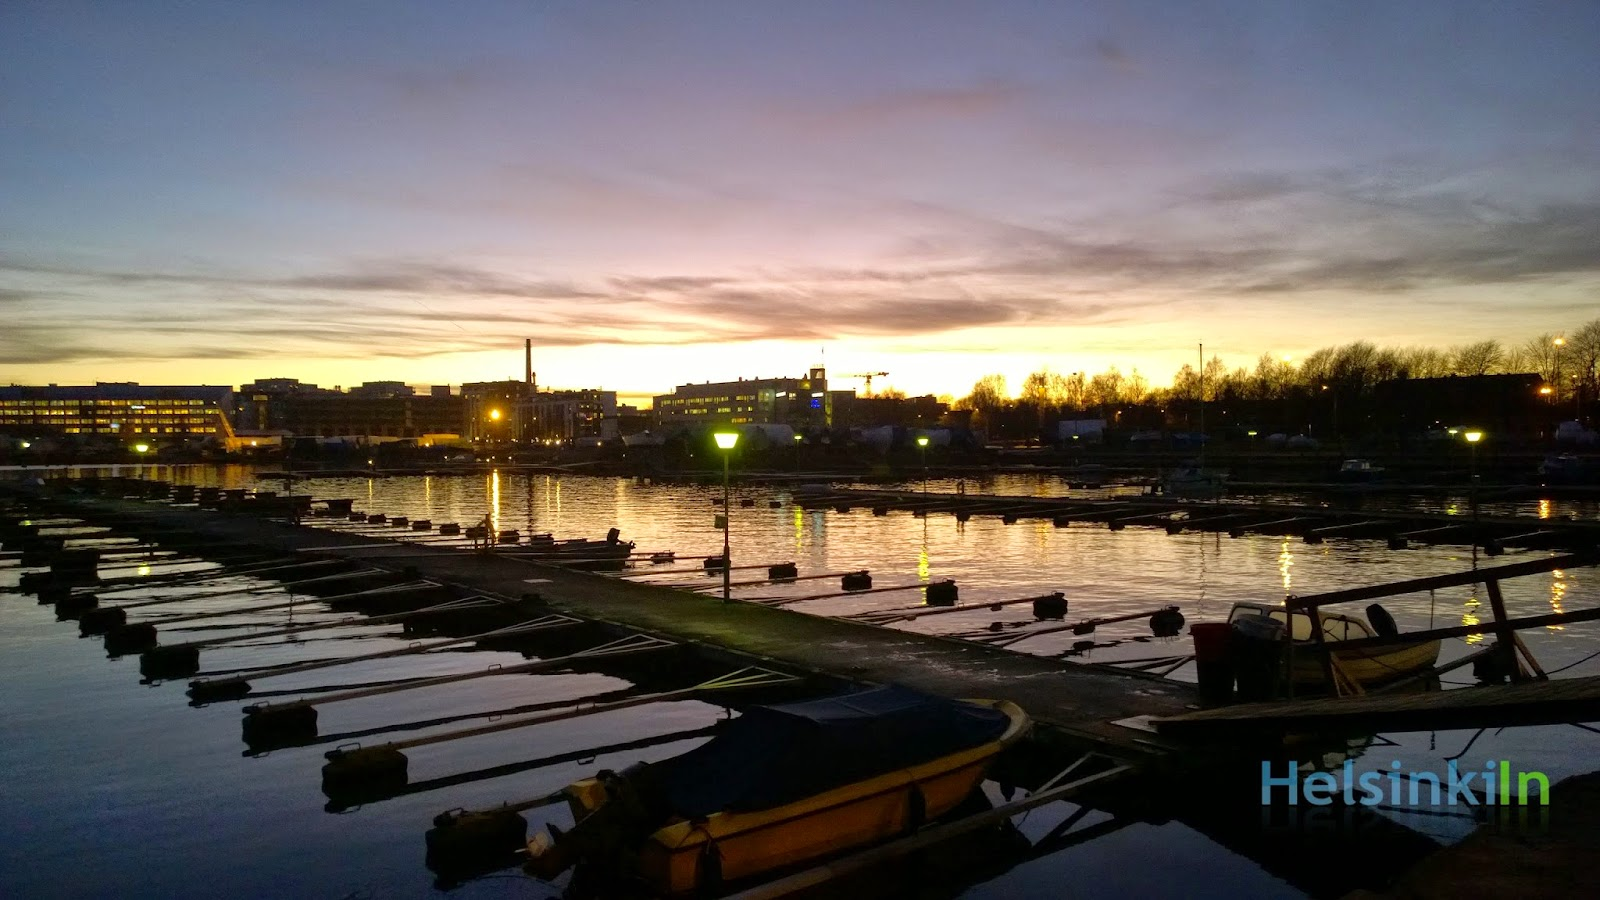 Sunset over harbor in Lauttasaari